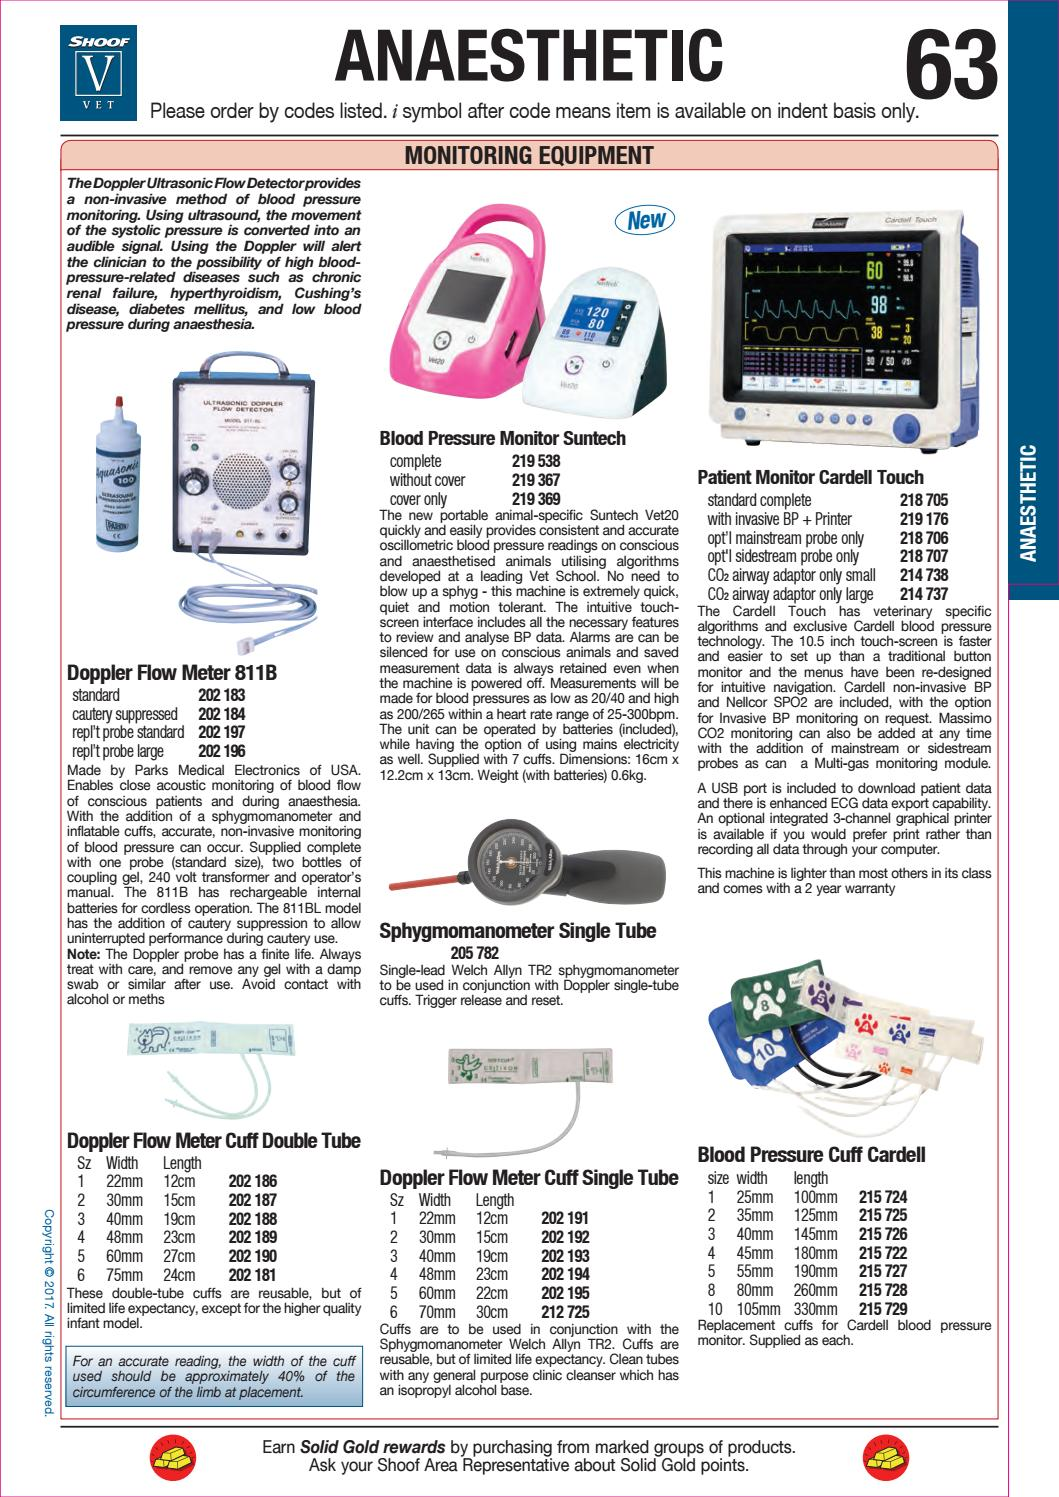 Vet 2017 catalogue by biplab rout (MageDigest) issuu